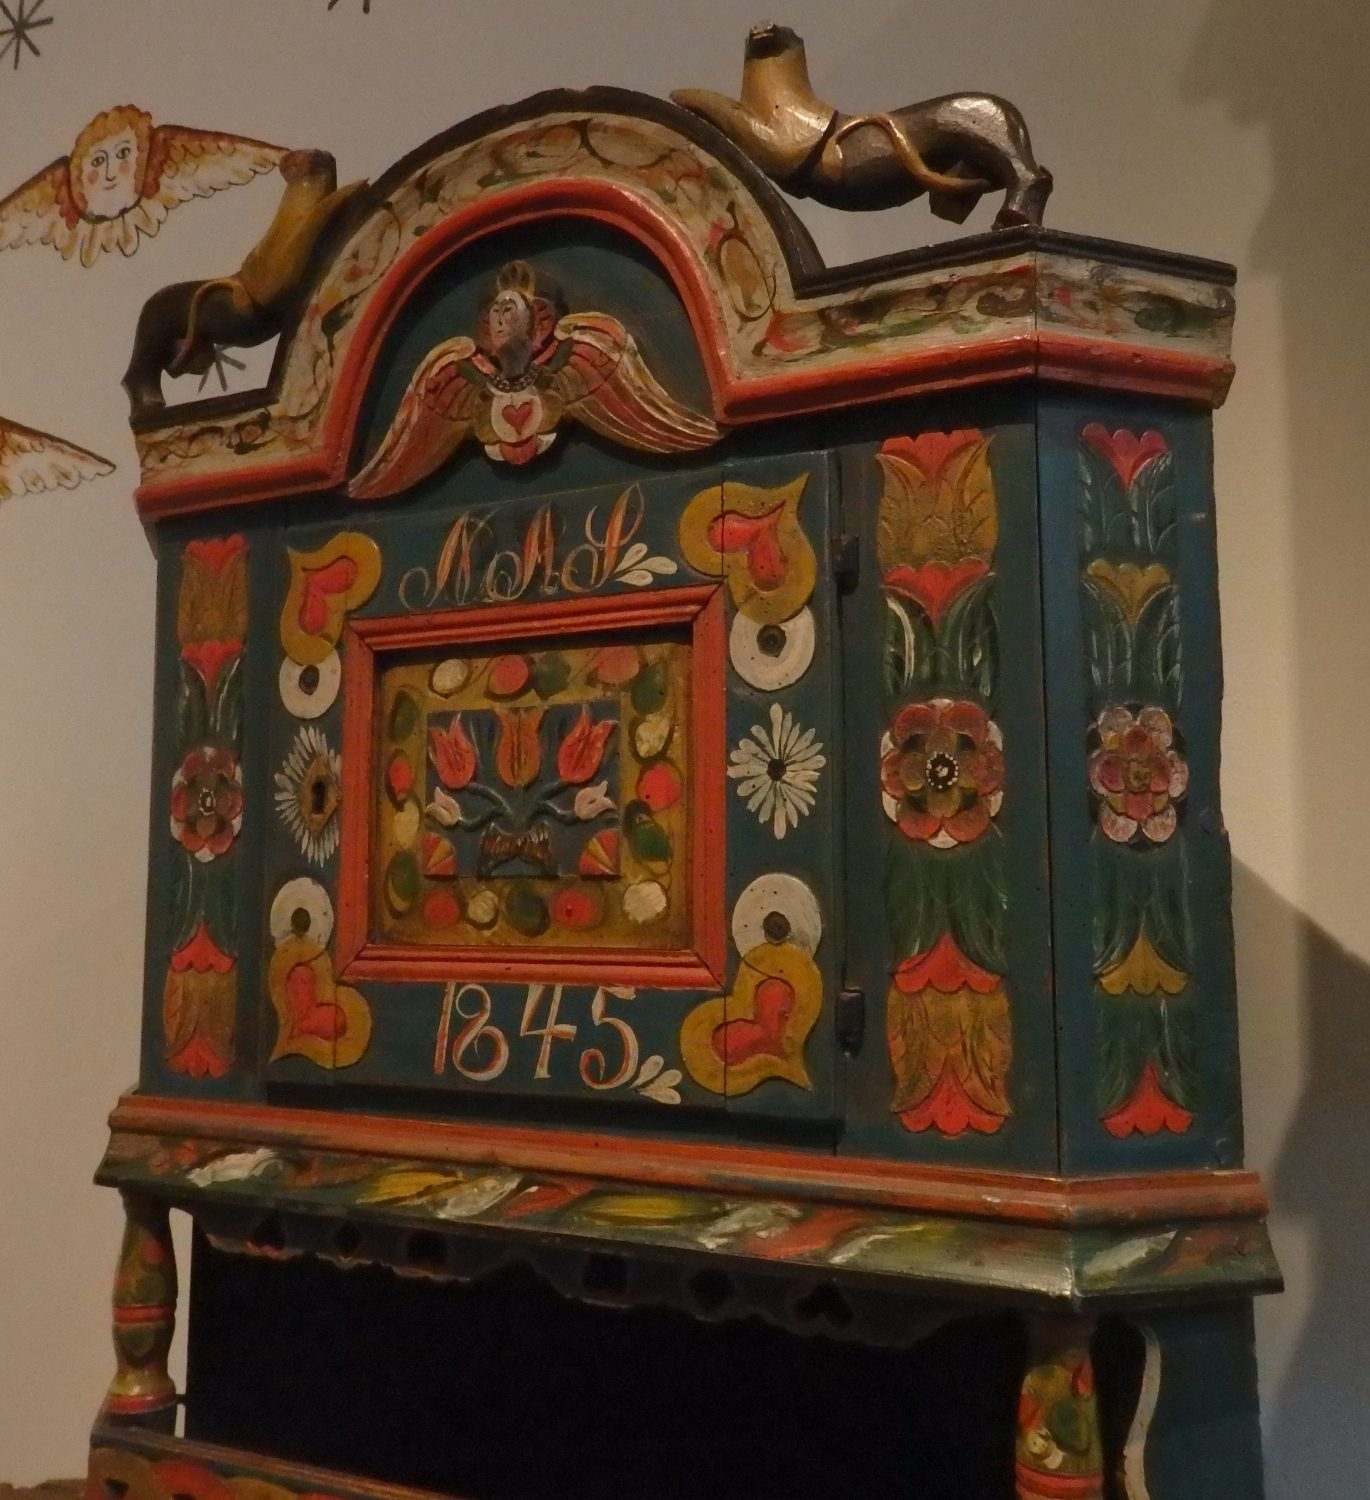 an example from the furniture collection at the Nordic Museum, Stockholm, Sweden